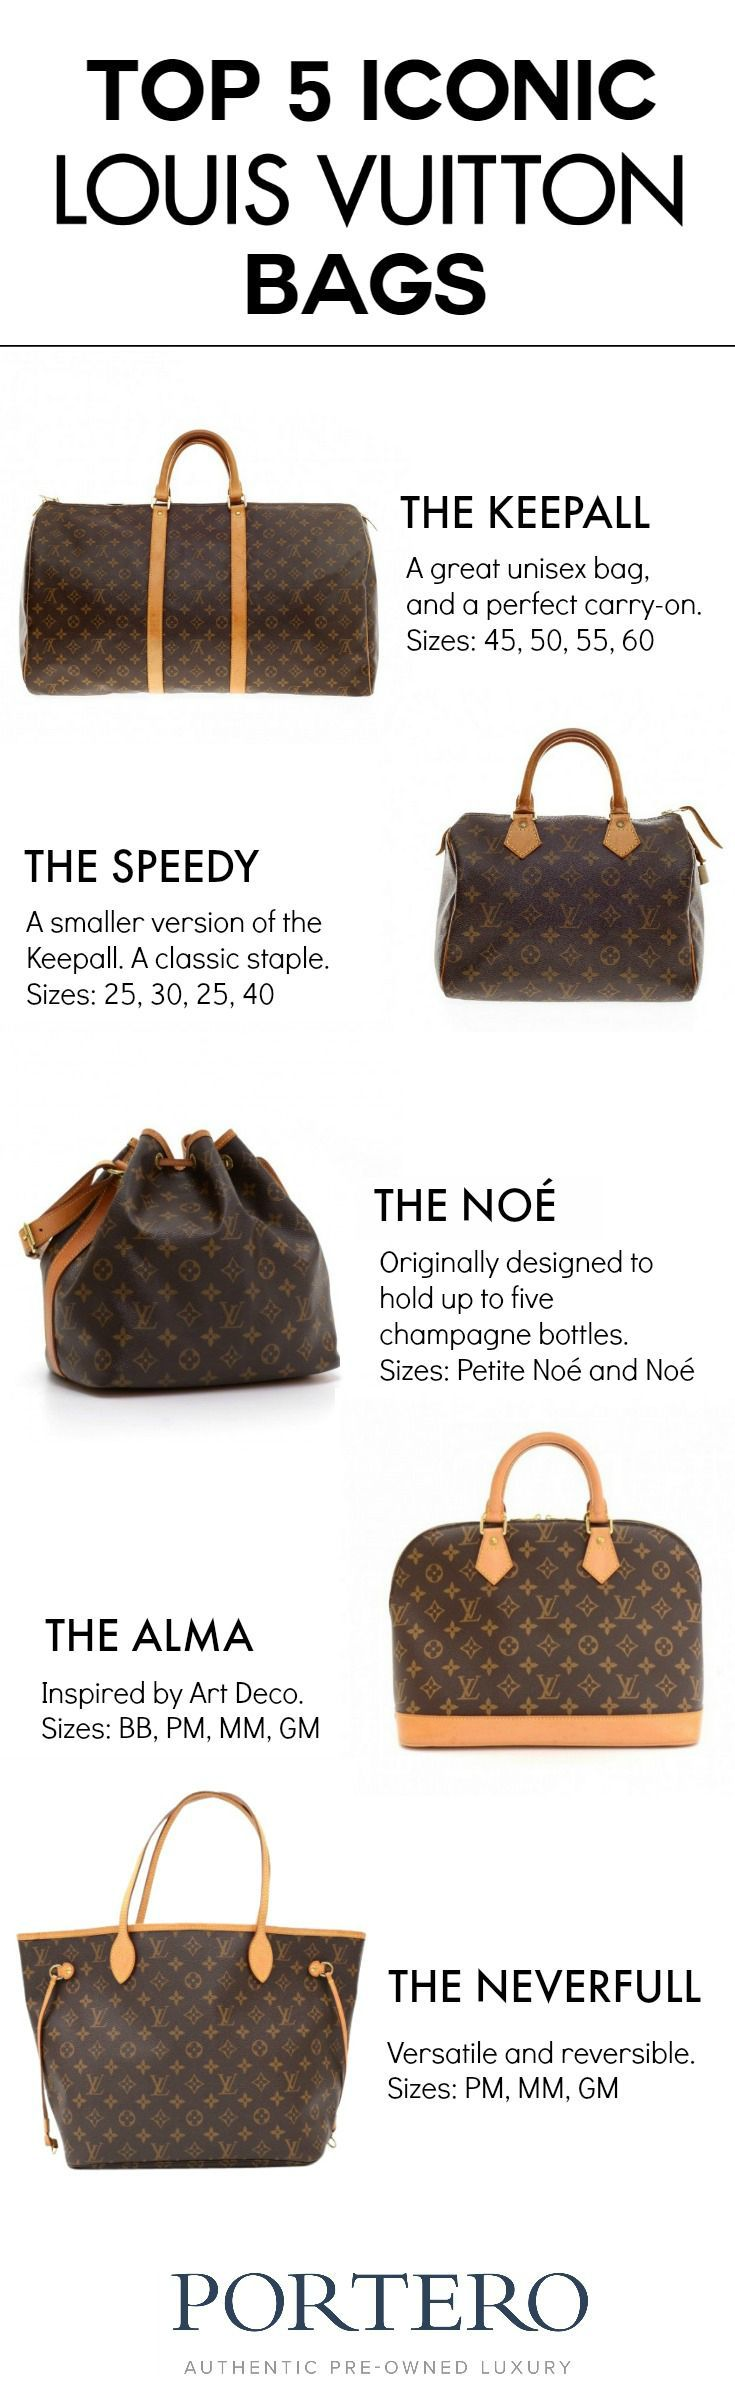 5 Most Iconic Louis Vuitton Handbags Have All 5 Have Neo Instead Of Noe Which I Prefer Neo Is Bet Louis Vuitton Louis Vuitton Handbags Louis Vuitton Bag